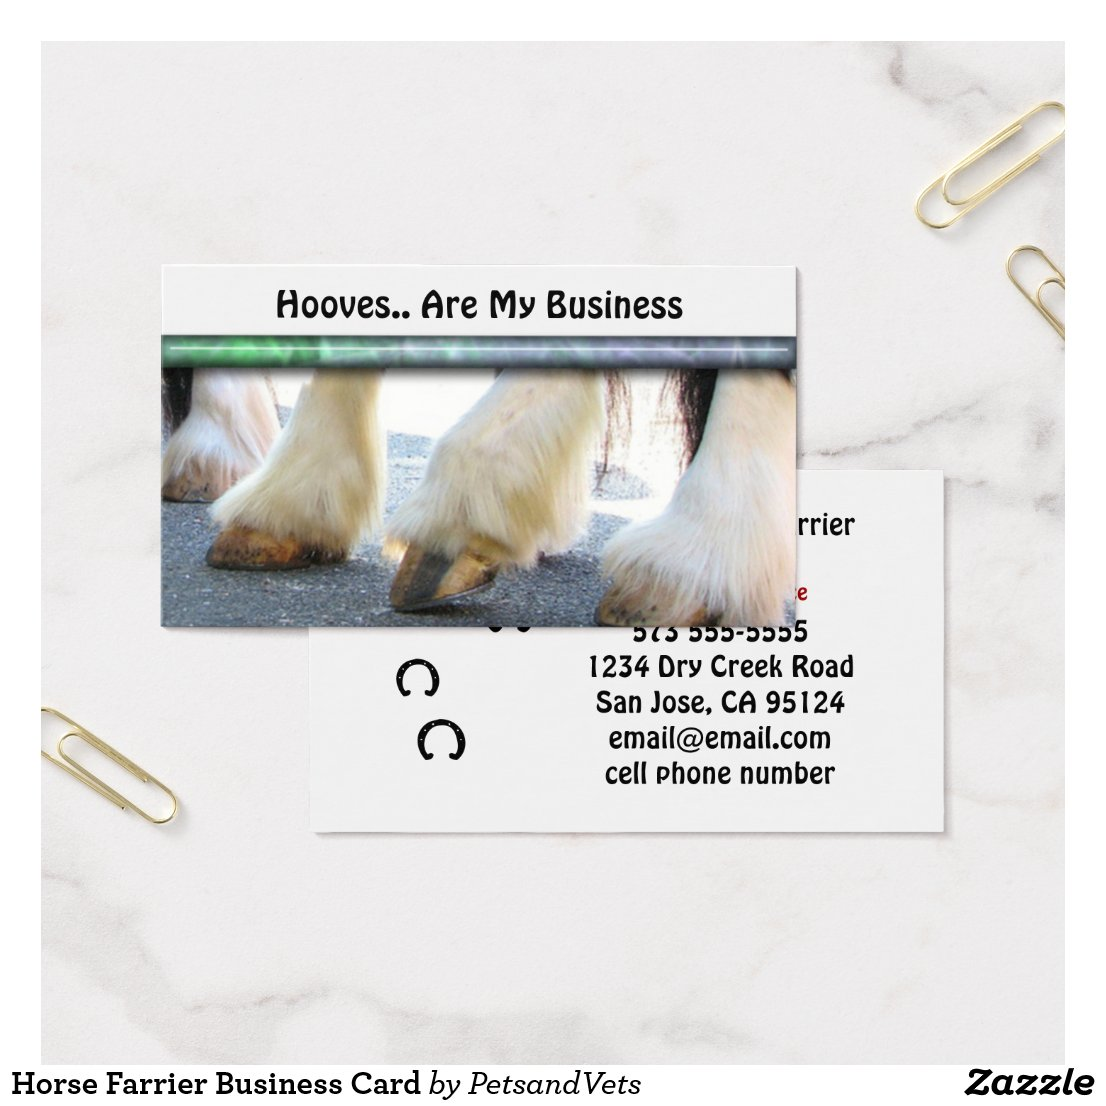 Horse Farrier Business Card